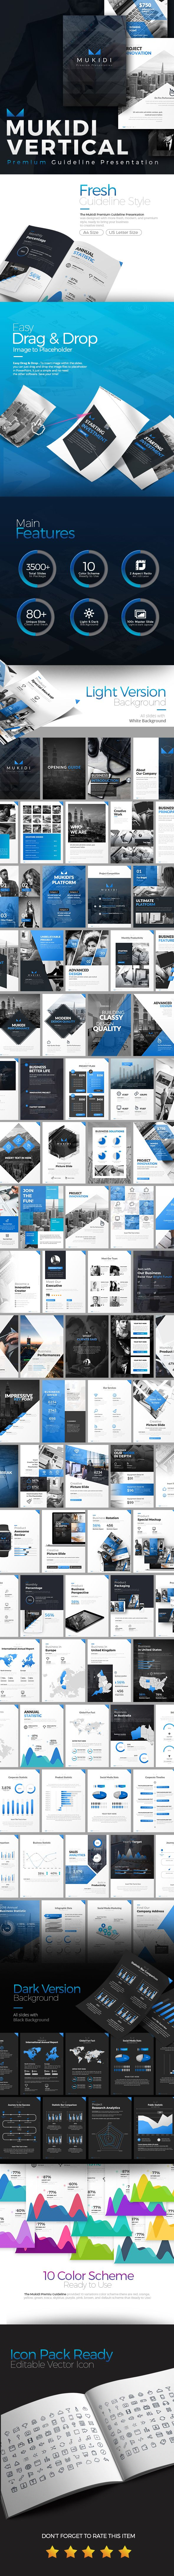 Mukidi vertical premium presentation business powerpoint templates mukidi vertical premium presentation power point templatesbusiness toneelgroepblik Image collections